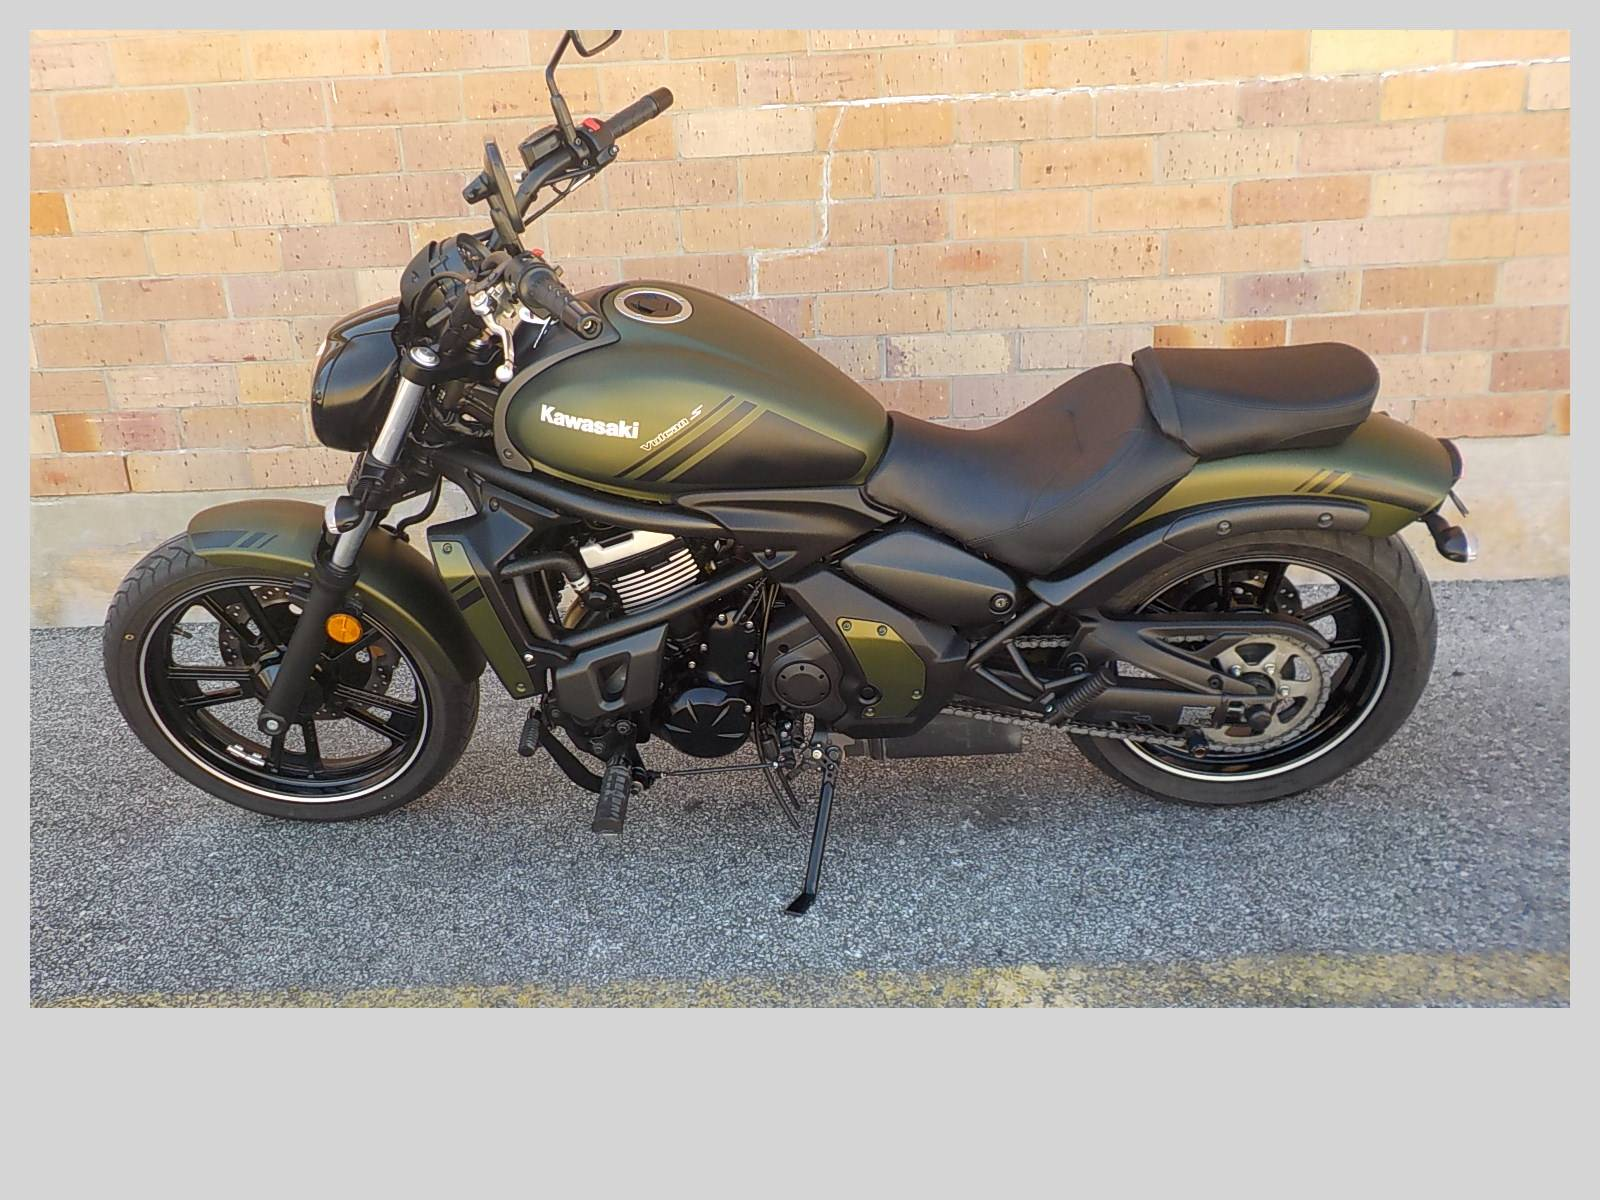 2019 Kawasaki Vulcan S in San Antonio, Texas - Photo 2